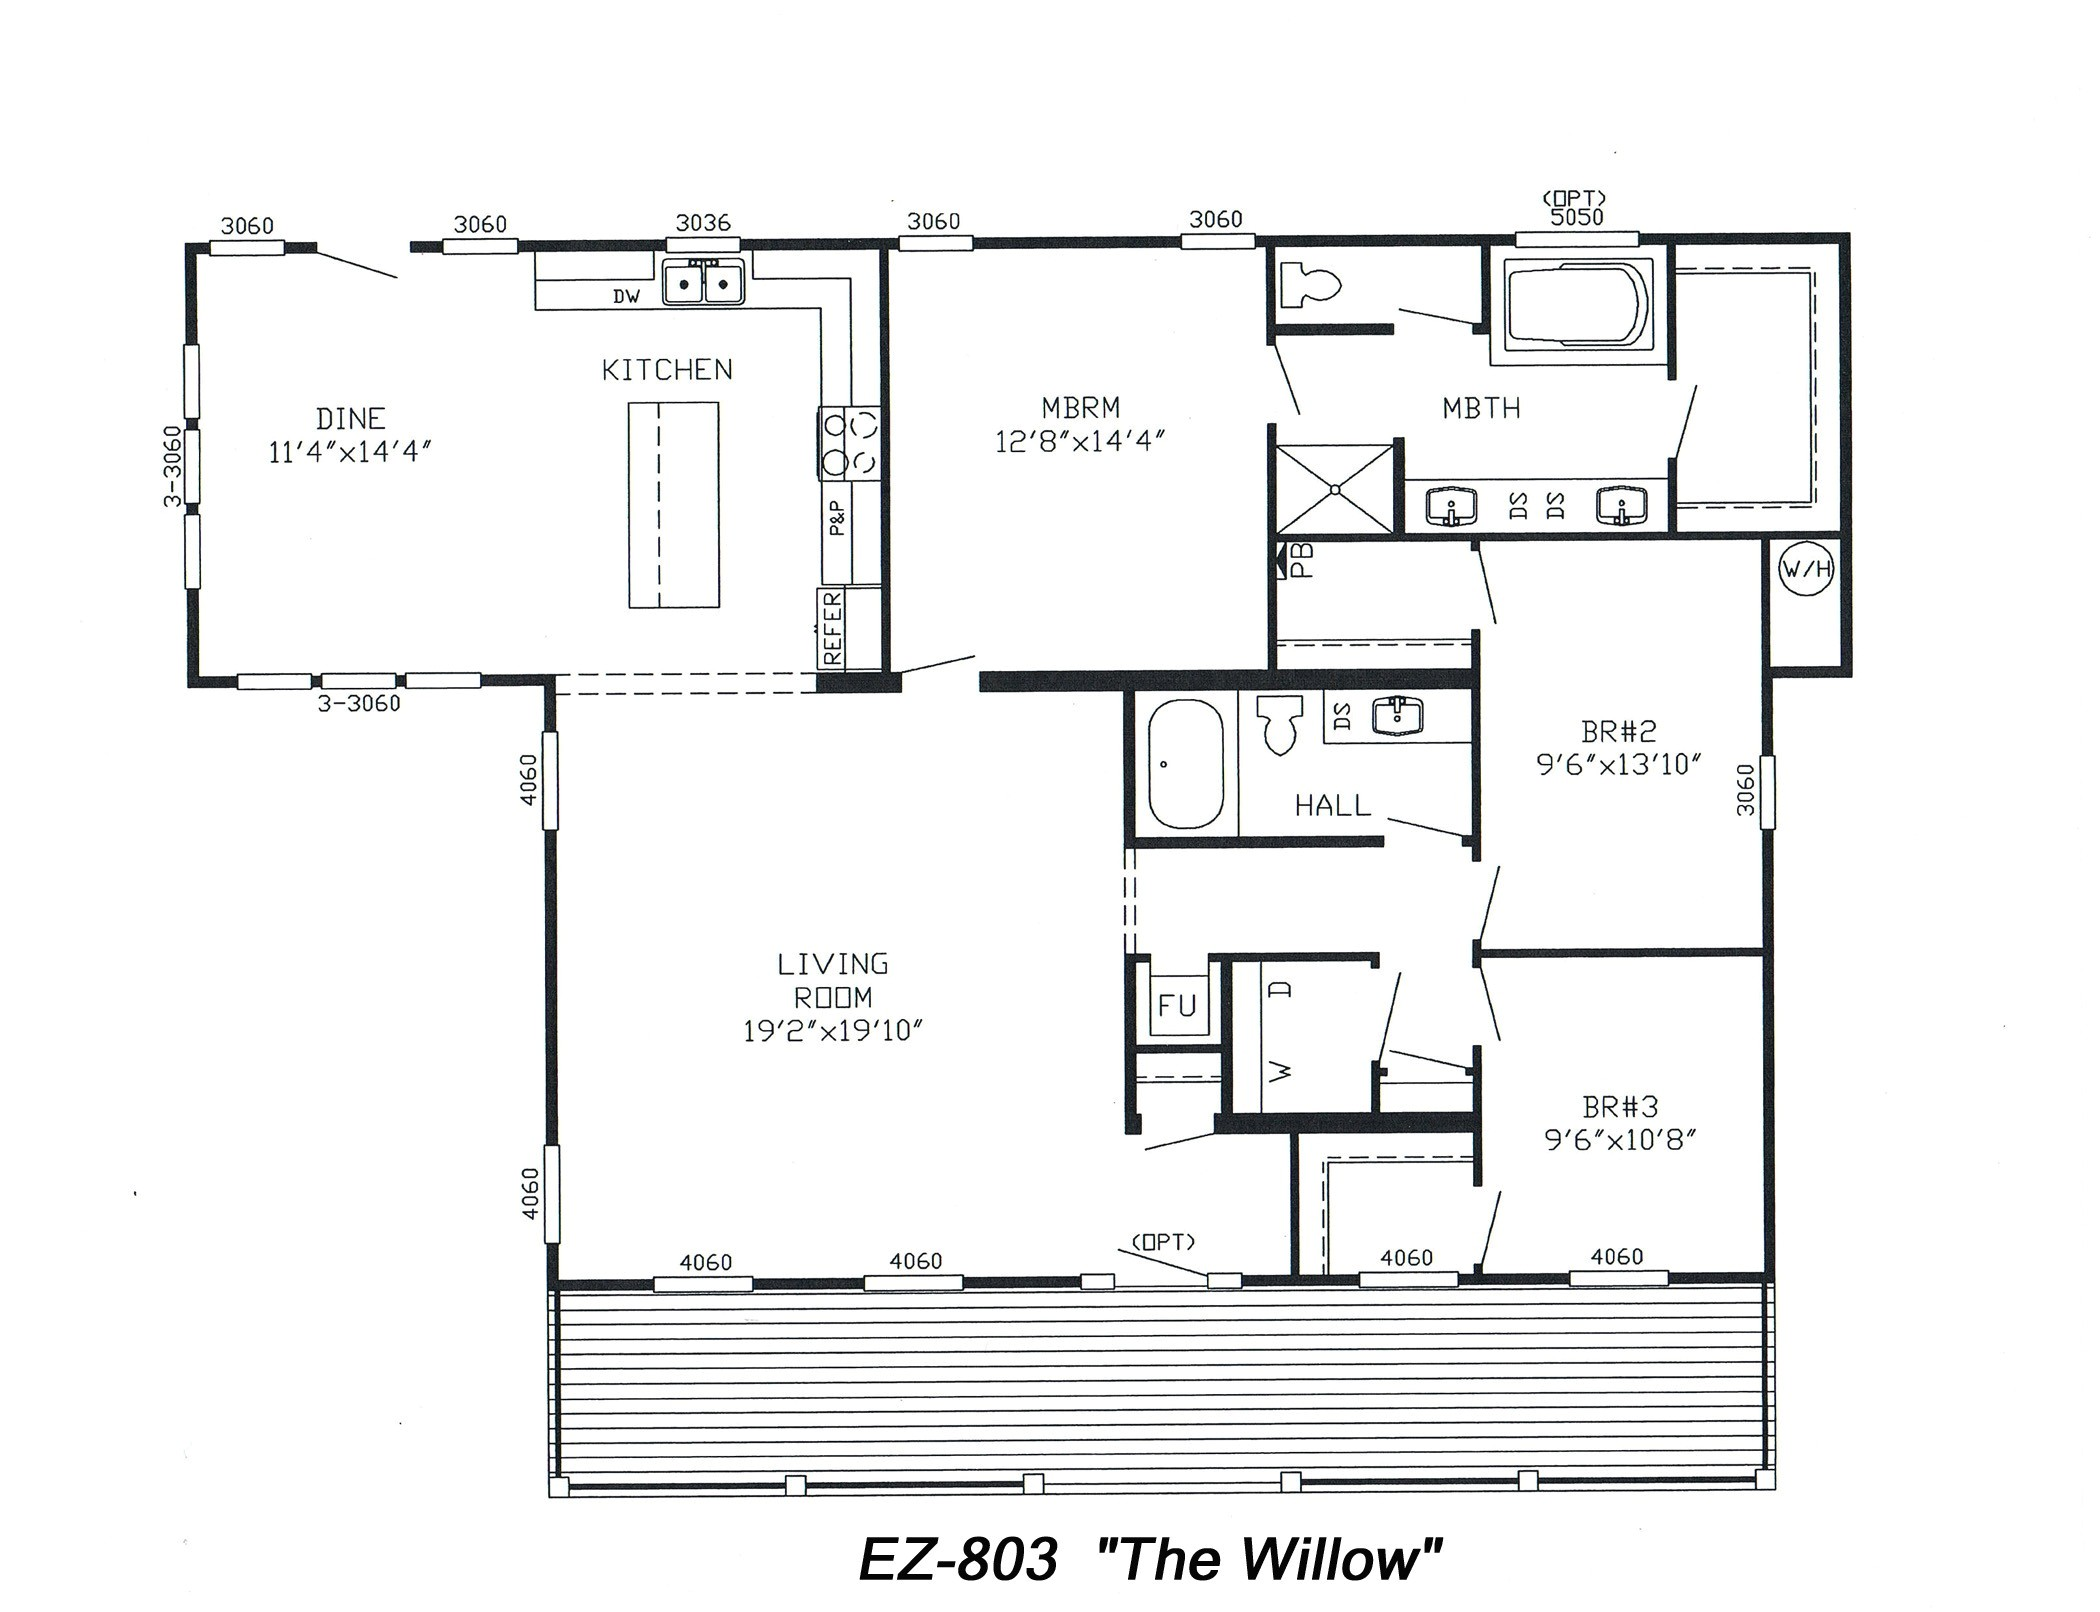 modular home floor plans illinois awesome manufactured homes marlette floor plans home triple wide 6 bedroom